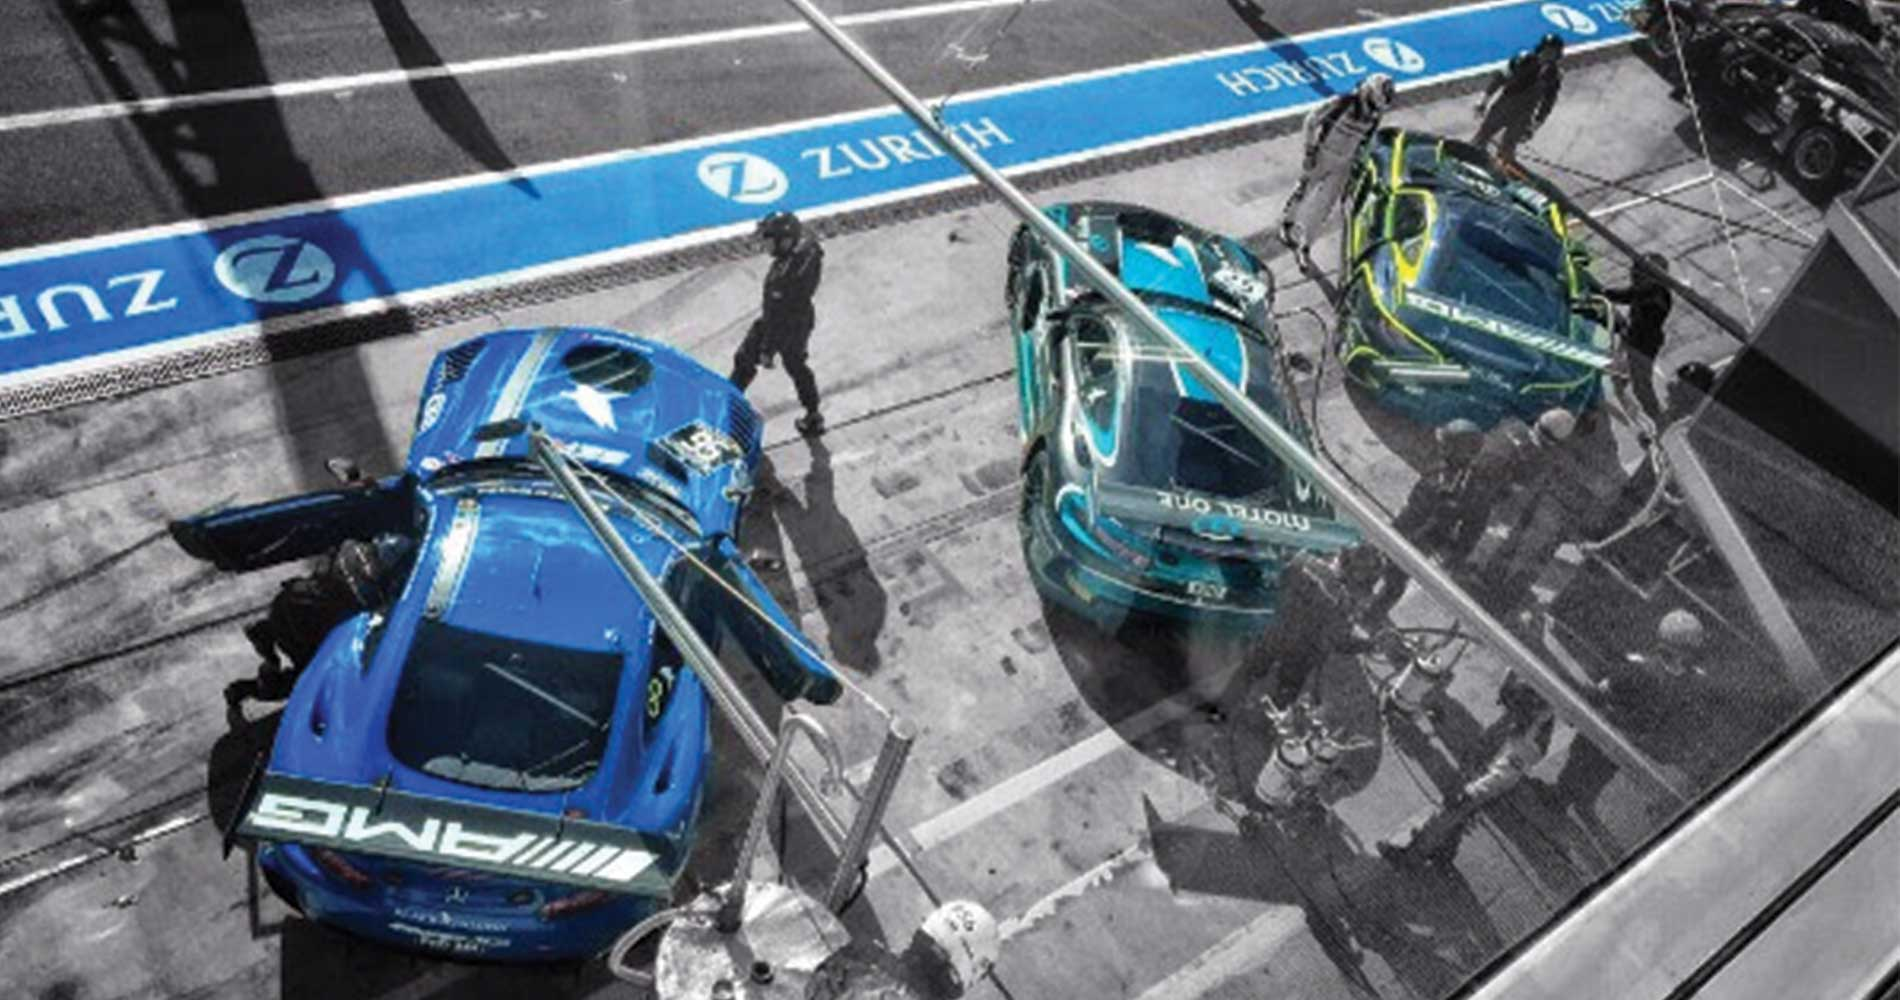 puncture-thwarts-christodoulou-in-blancpain-endurance-finale-motorsportdays-5